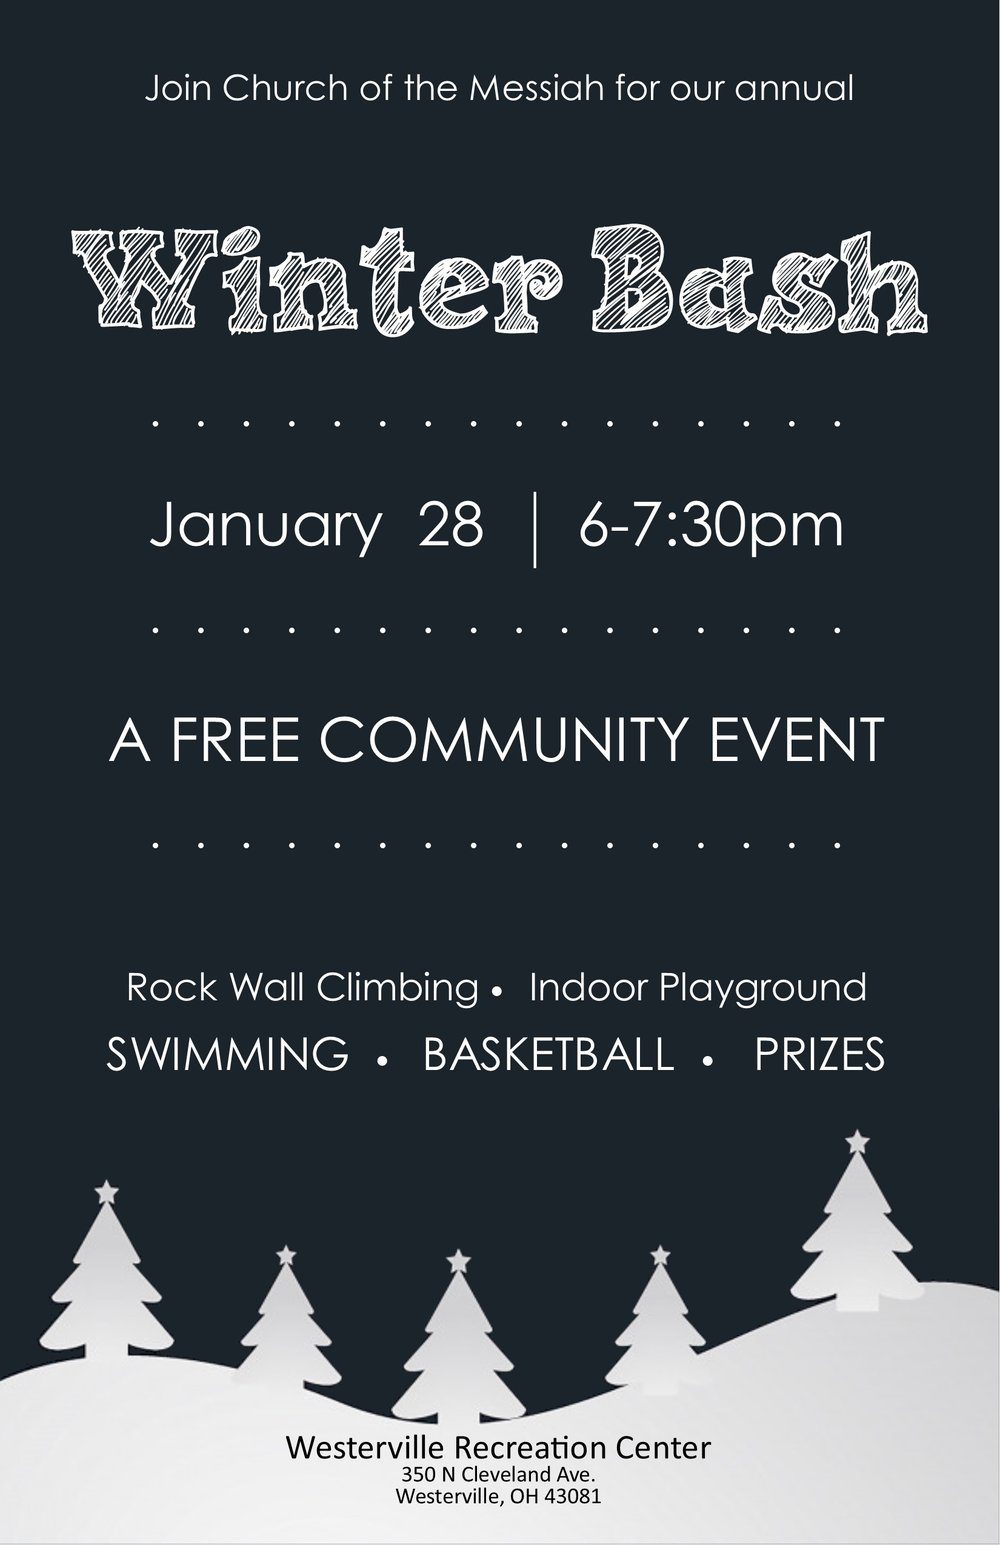 Join us for a FREE night at the Westerville Rec Center for swimming, rock wall climbing, basketball, and prizes!  Bring your family, friends, coworkers, and neighbors.